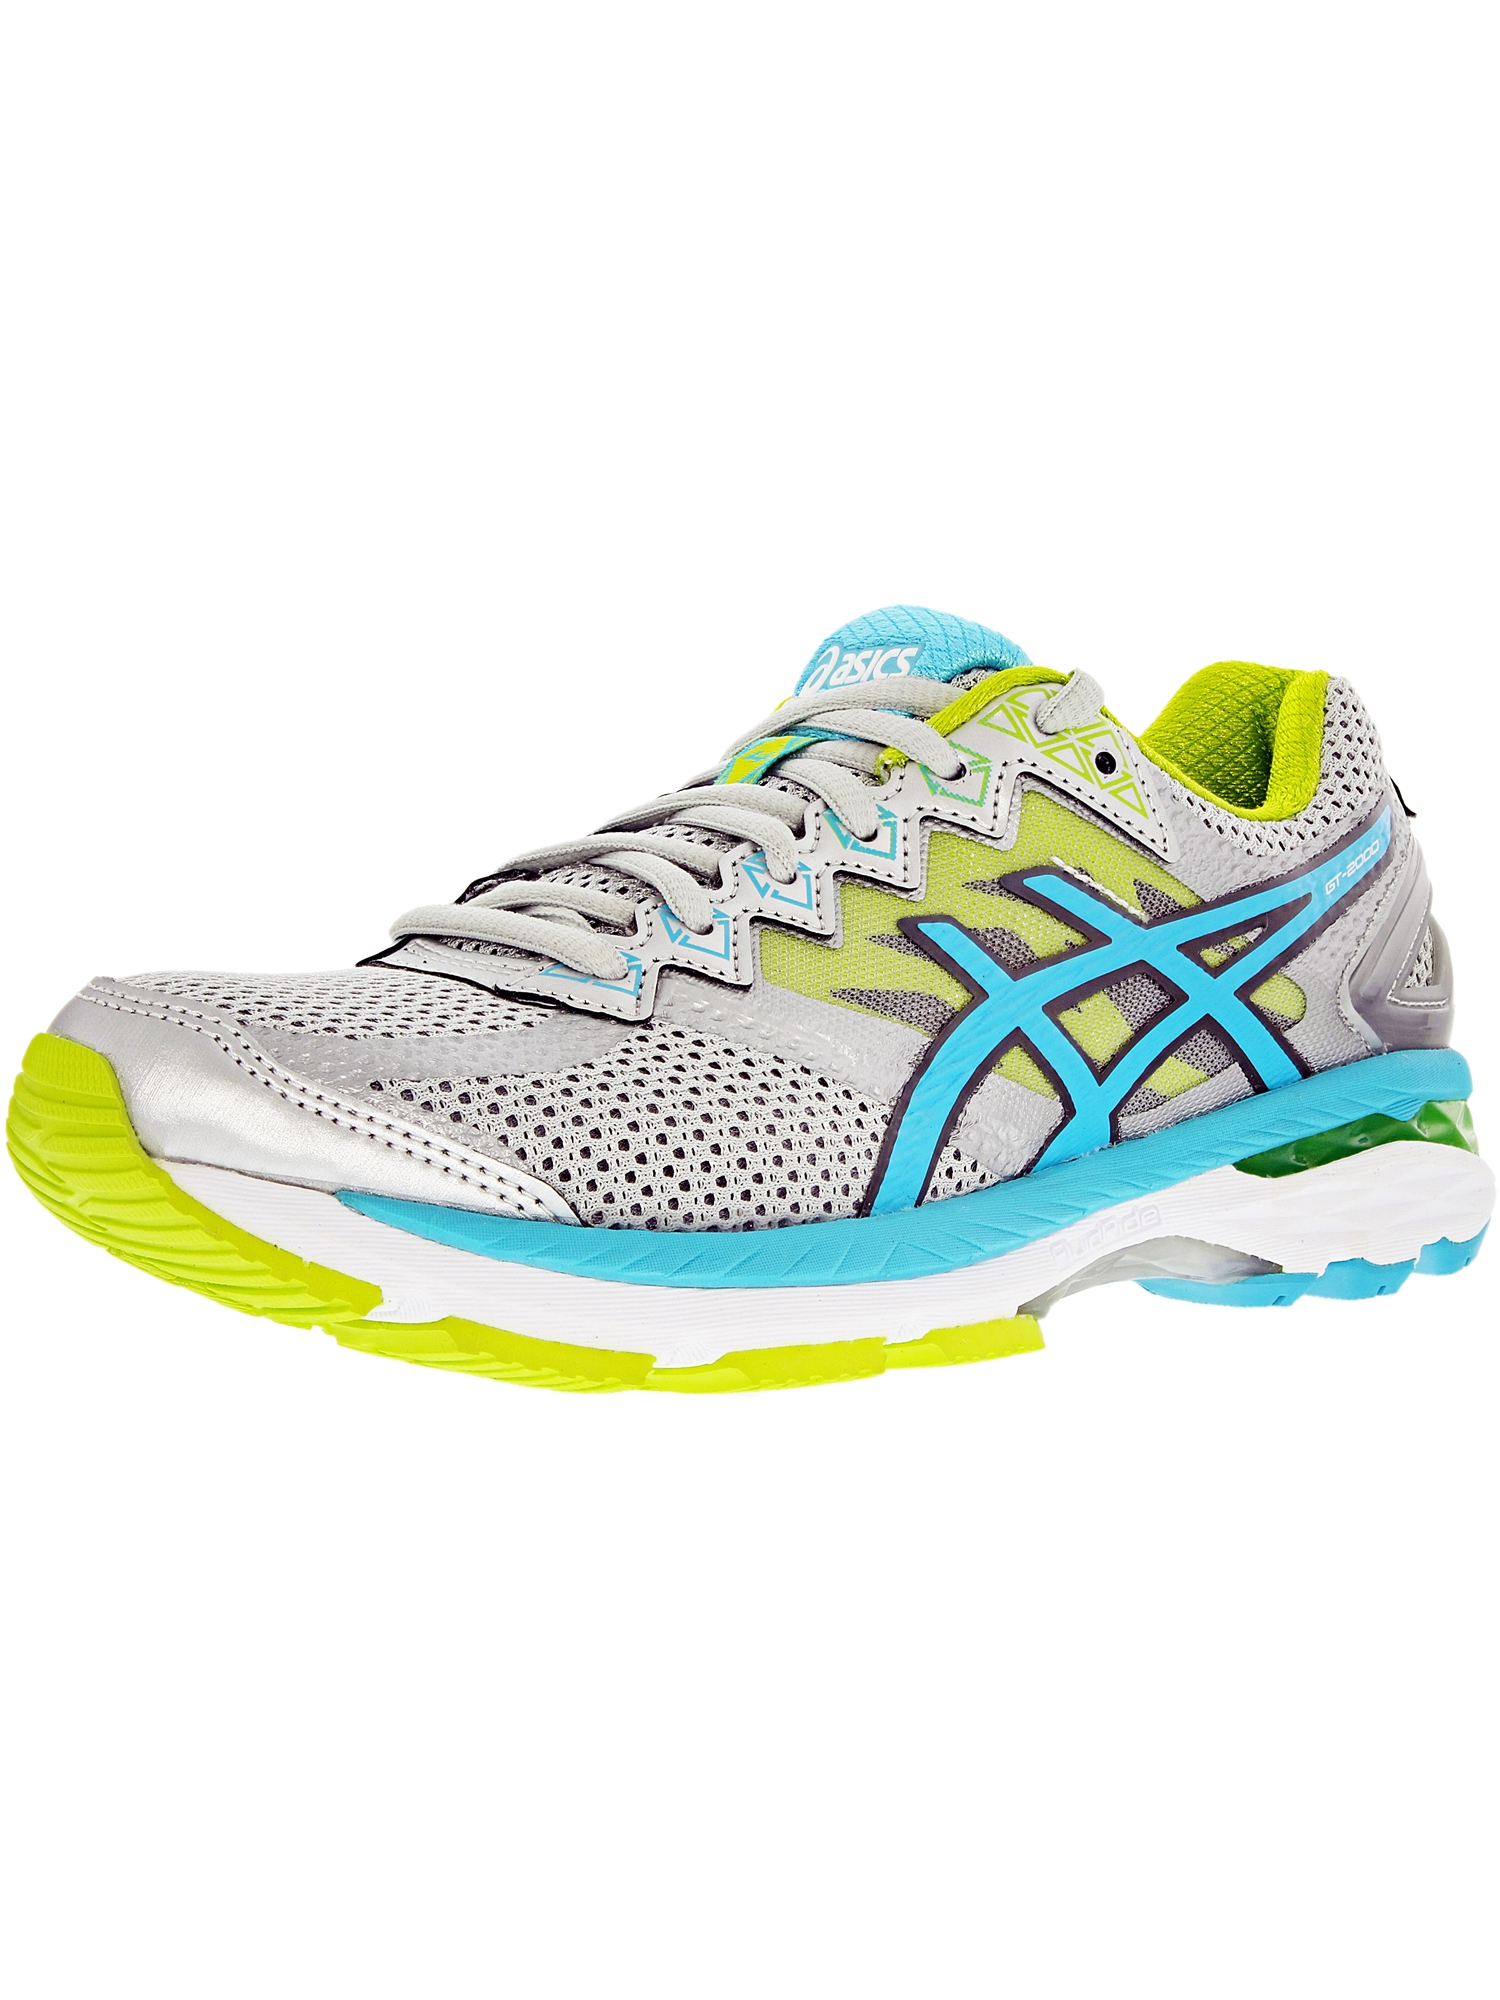 Asics Women's Gt-2000 4 Silver/Turquoise/Lime Punch Ankle-High Tennis Shoe - 6M